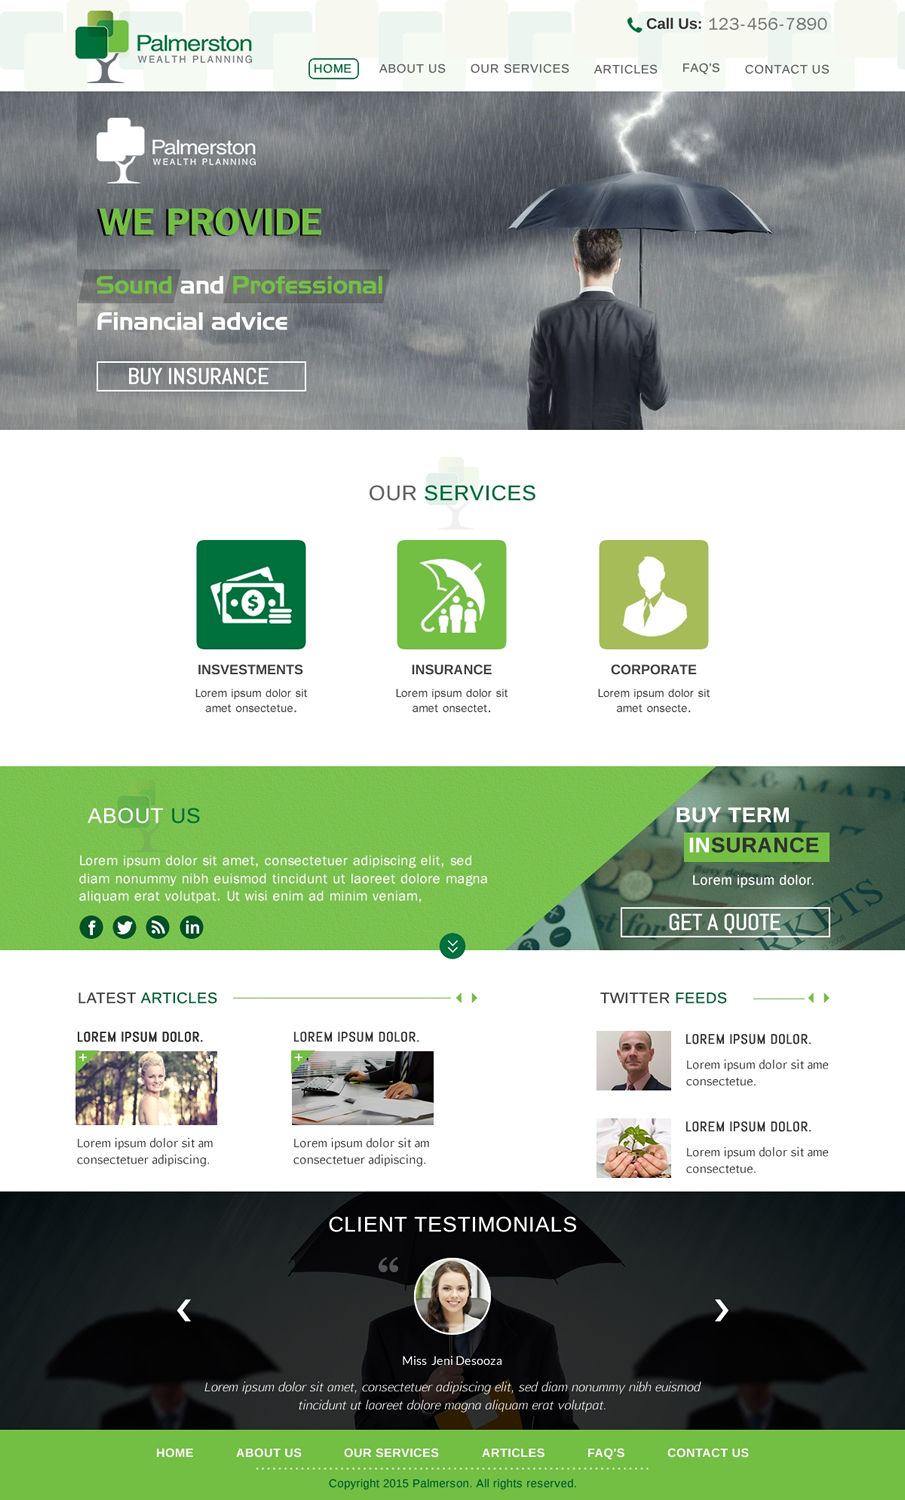 Professional Upmarket Financial Web Design For Palmerston Wealth Planning By Sbss Design